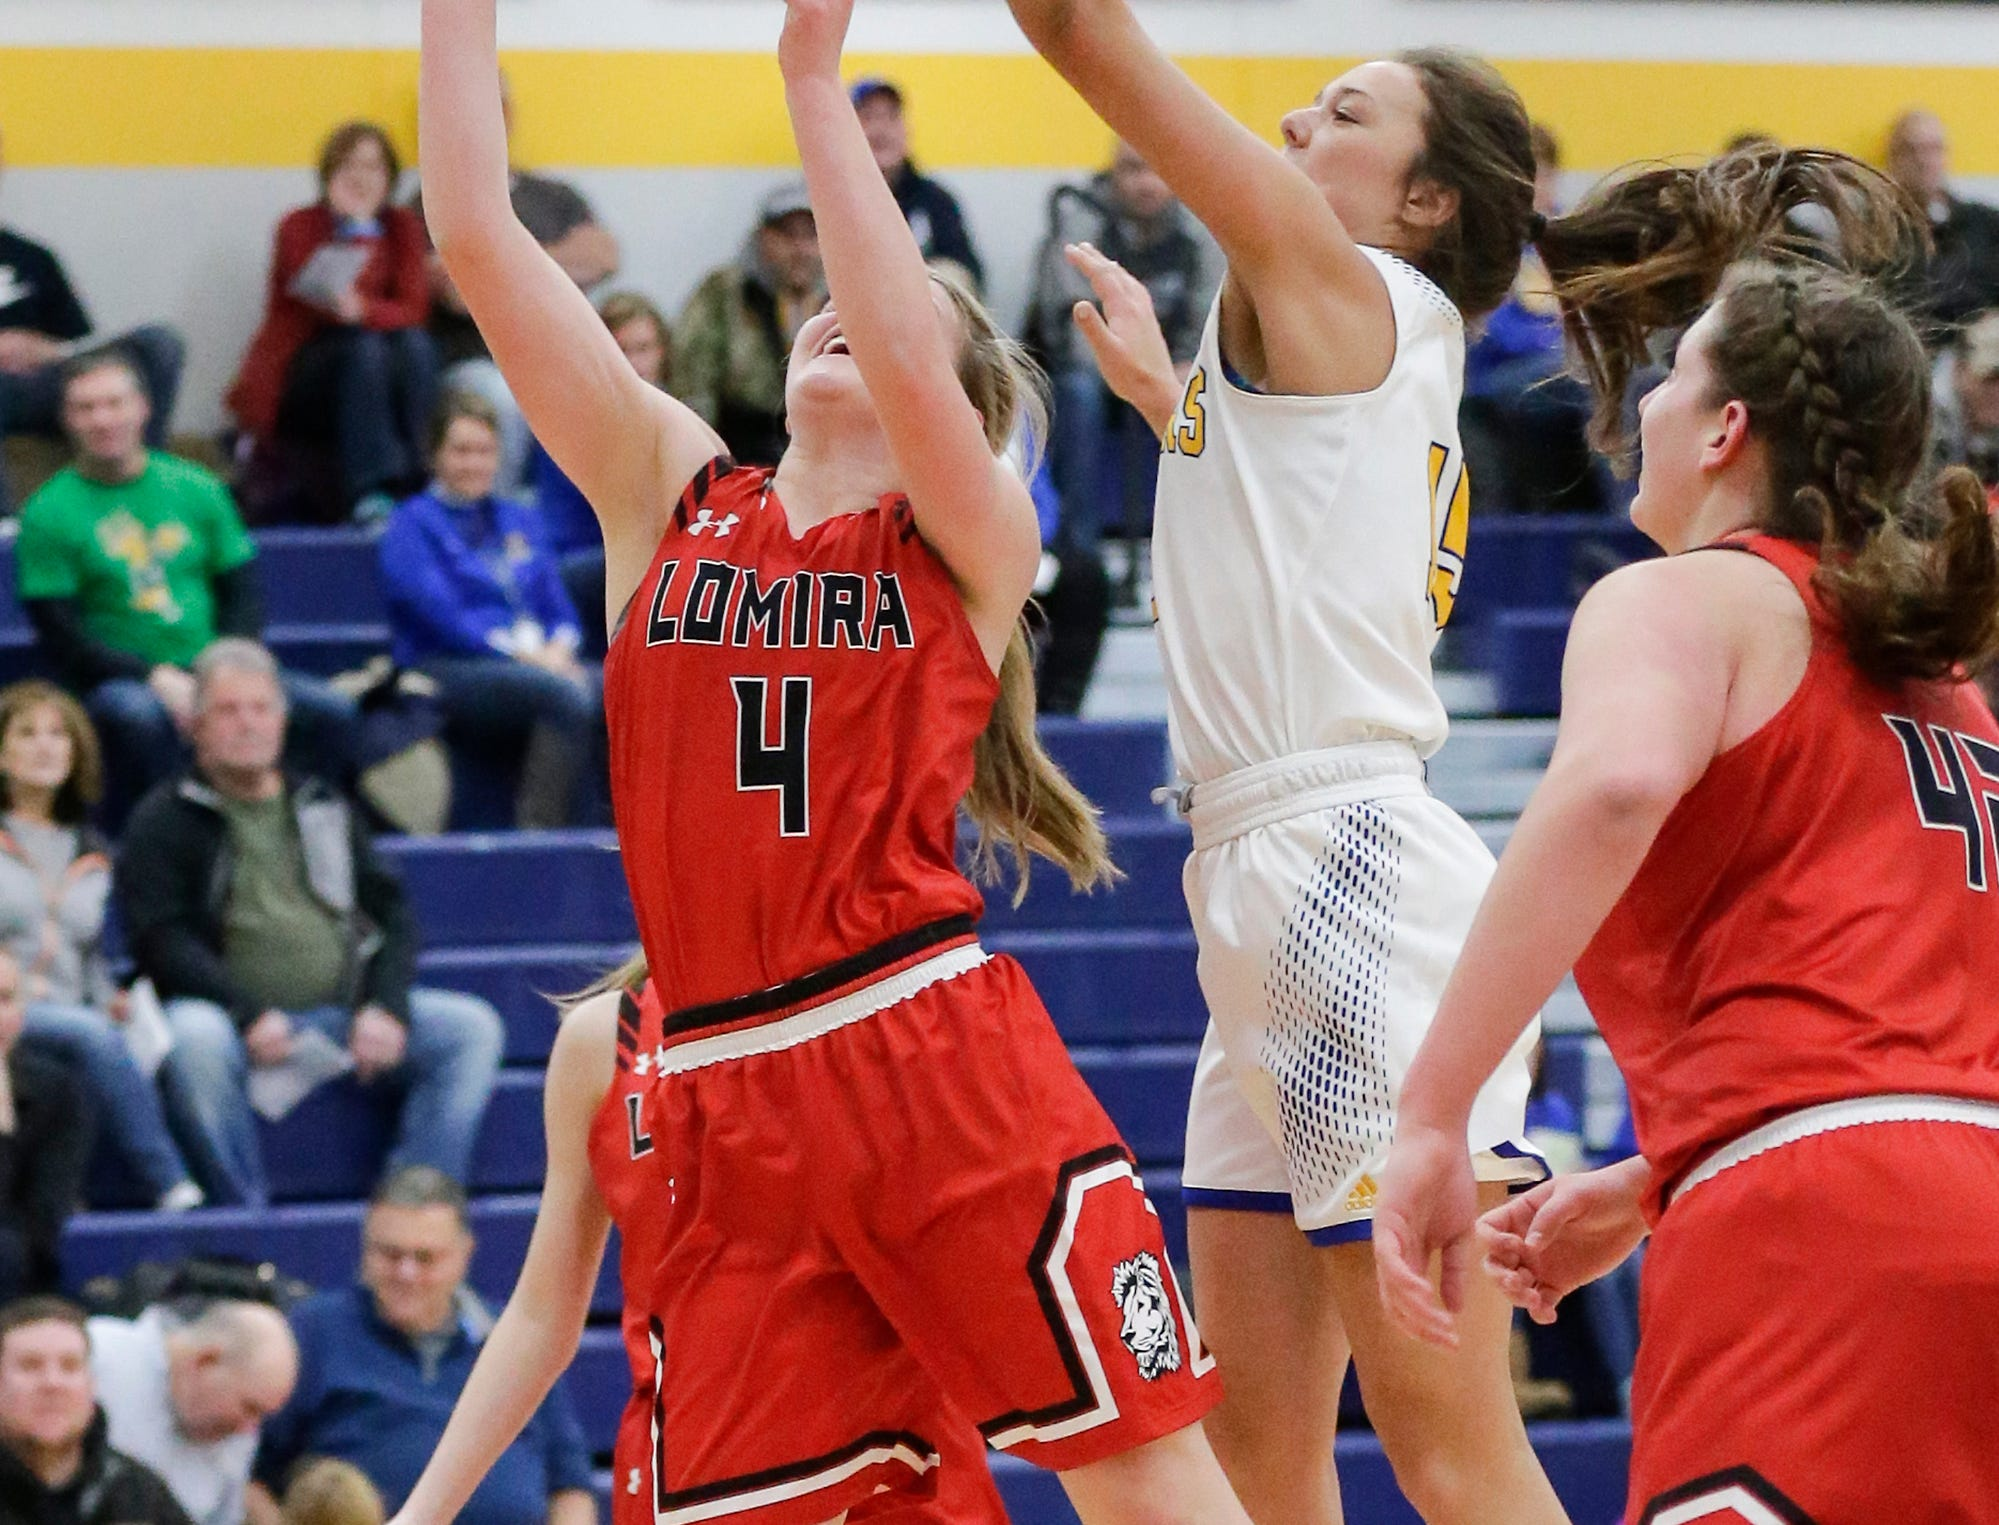 Campbellsport High School girls basketball's Grace Nerat gets a piece of the ball while Lomira High School's Elizabeth Wulff attempts a basket during their game Friday, December 28, 2018 in Campbellsport. Doug Raflik/USA TODAY NETWORK-Wisconsin